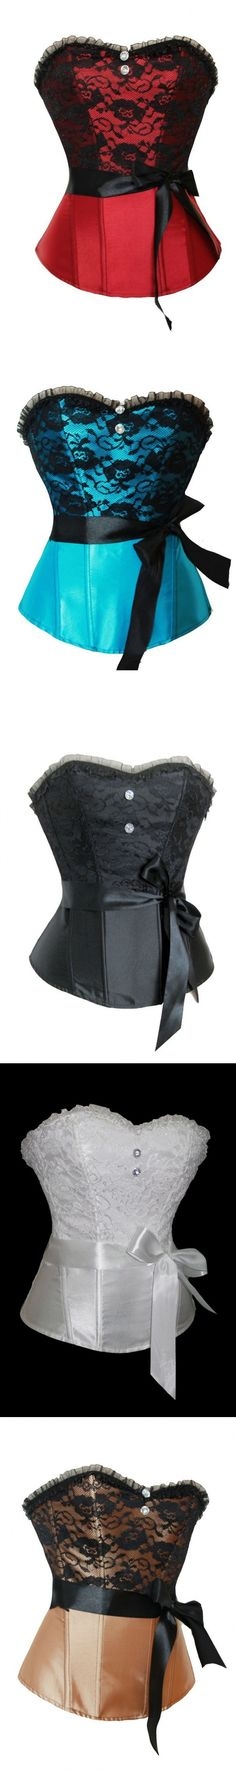 """Realistic Corset Naughty Slim Corset Undergarment Masquerade Half Cup """"Azure Corsets, Corset Costume Outfit"""" Buckle Ladies Naughty Embroidered Half Cup Waist Trimmer Mesh Laces Strapless Cosplay Cleavage Silk Tall Undergarment Rave Corset Coquette Tummy Bridal Casual."""